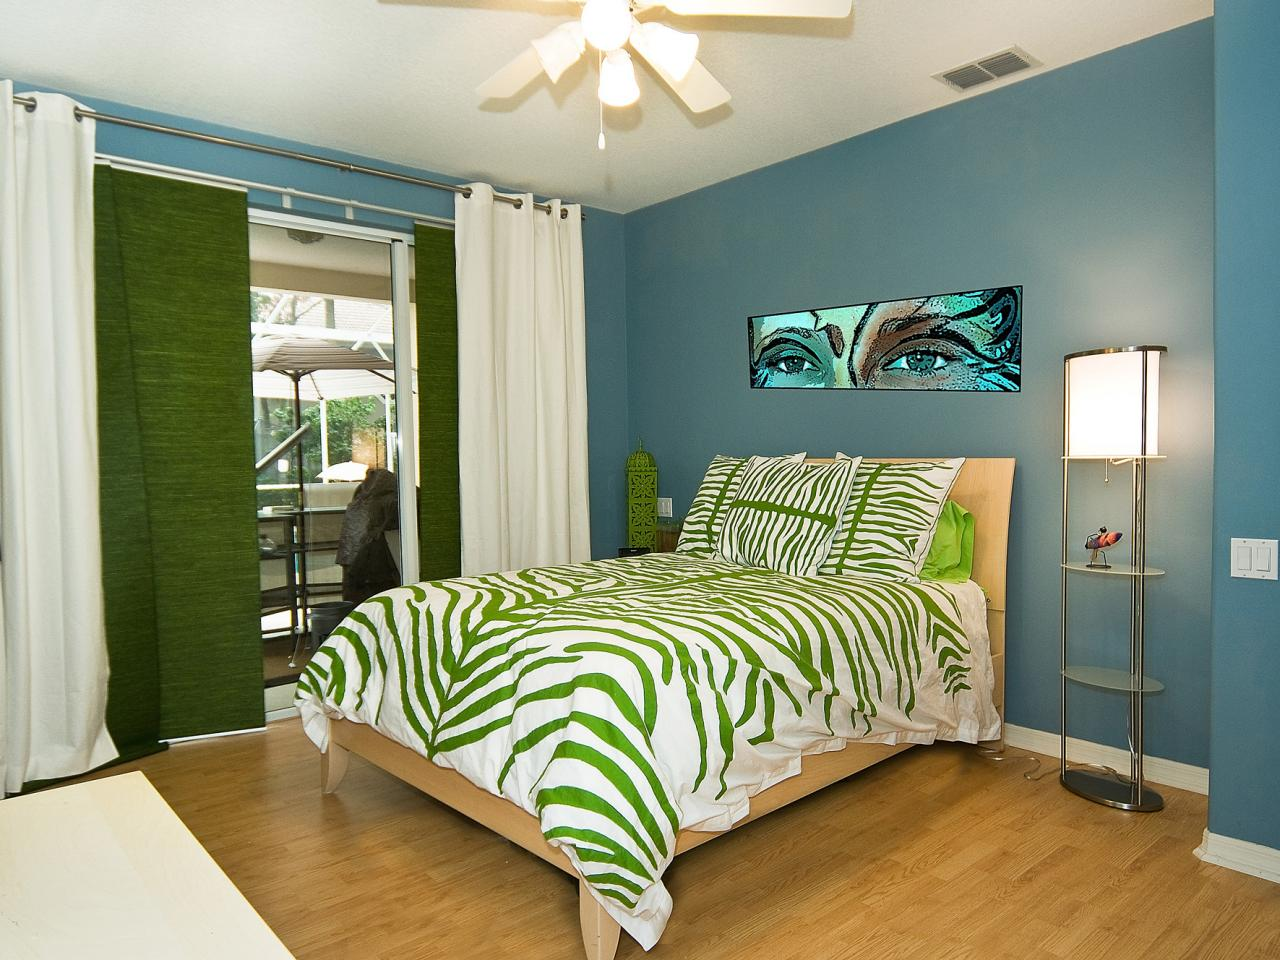 Sassy and sophisticated teen and tween bedroom ideas Bedroom ideas for teens